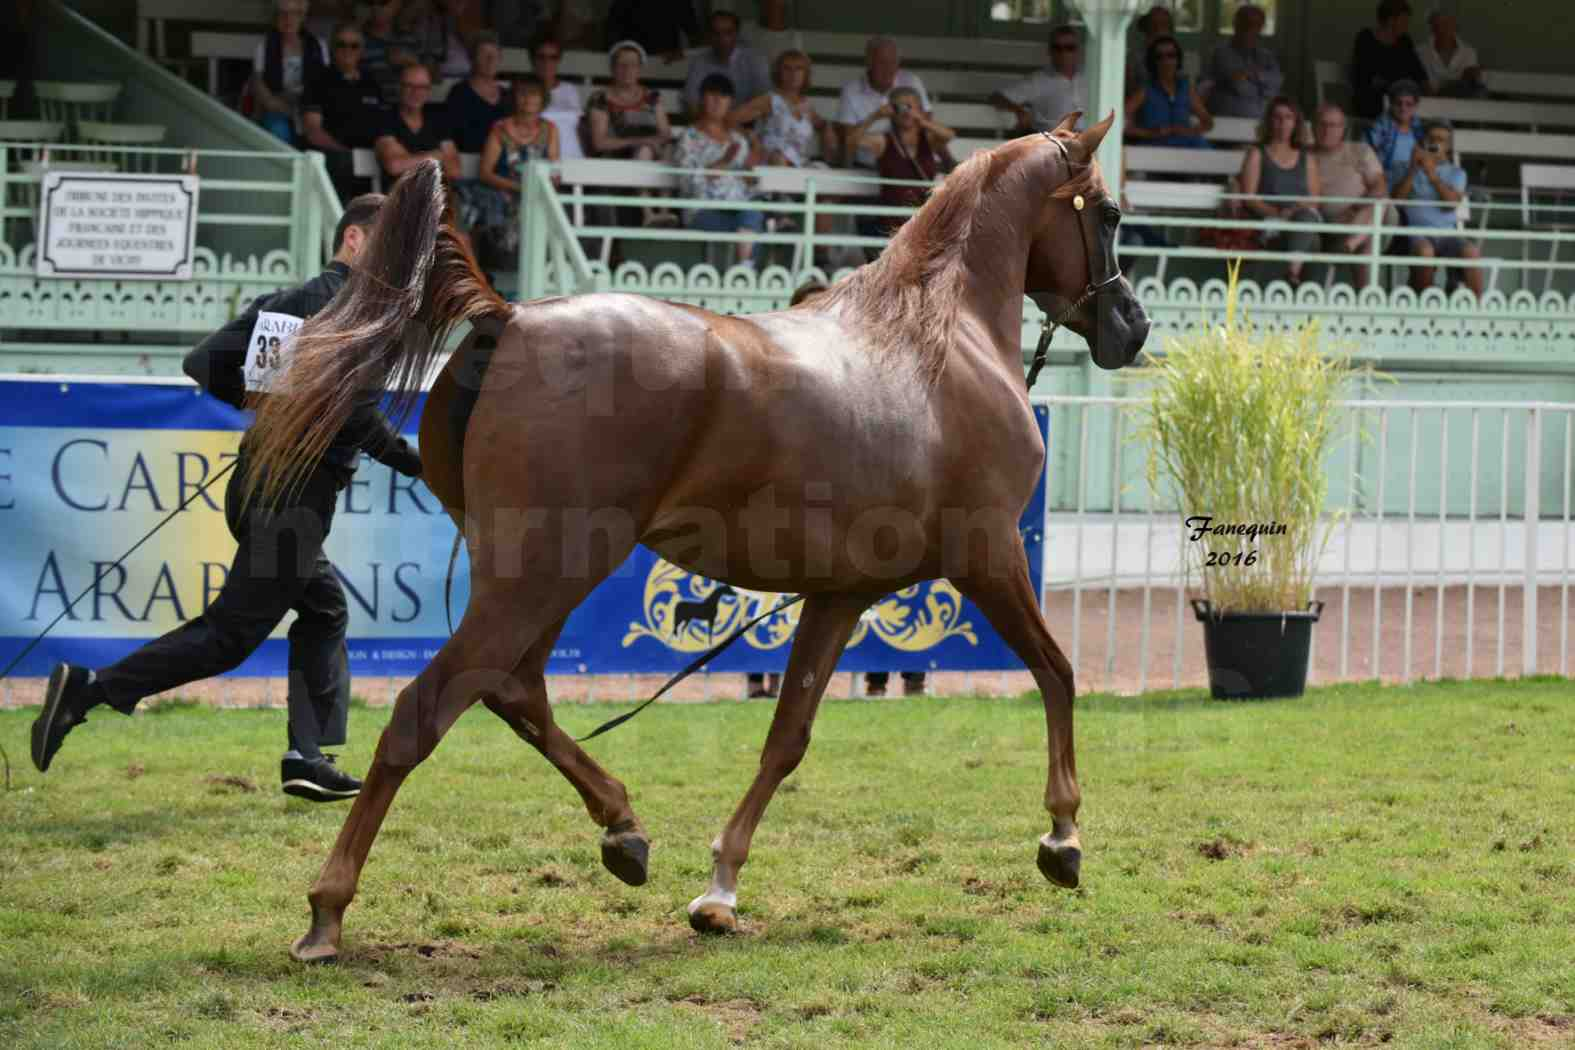 International Arabian Horse Show B de VICHY 2016 - PEARL DE DJOON - Notre Sélection - 35